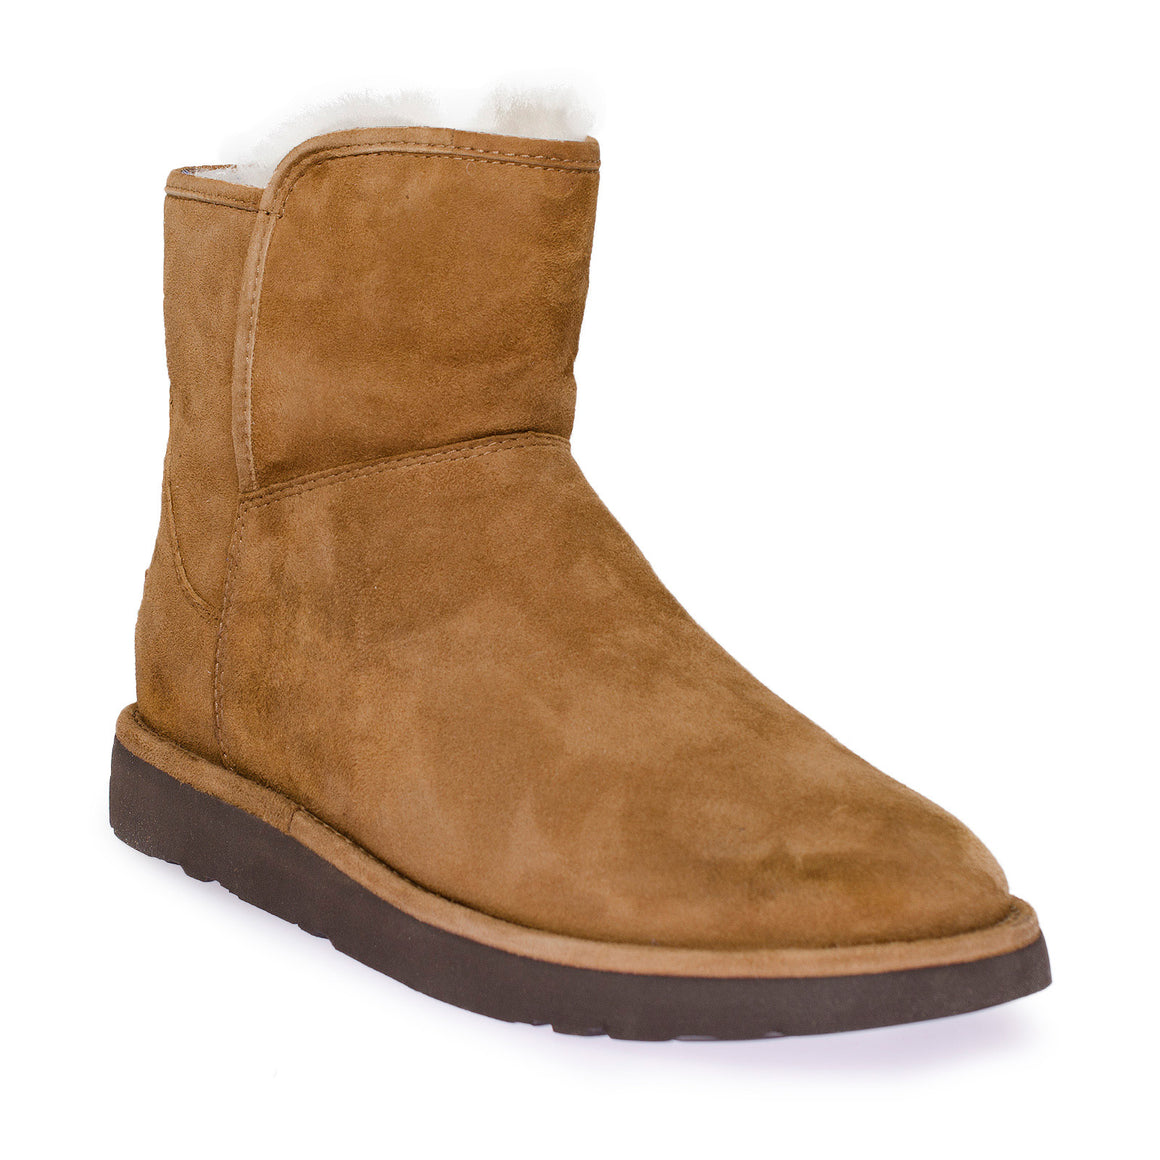 UGG Abree Mini Bruno Boots - Women's